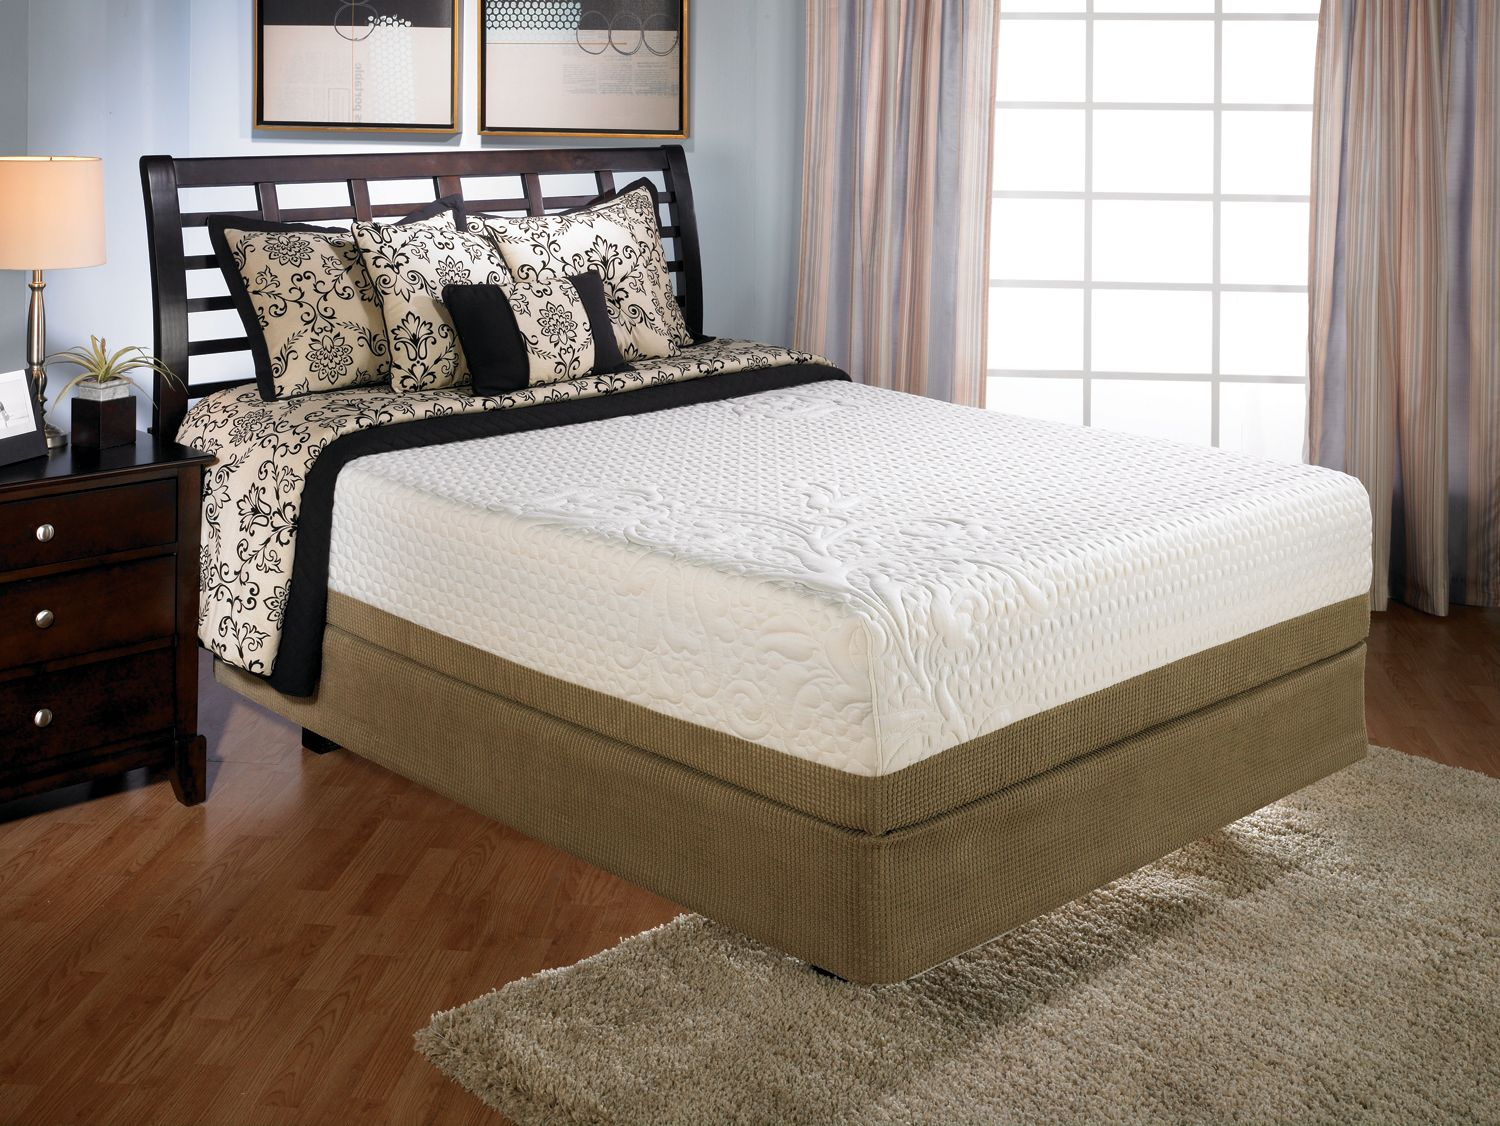 use with sleepys spring and for walmart king mattr a or queen sets boxspring everyday great set room mattress size costco sears serta spare bedroom box